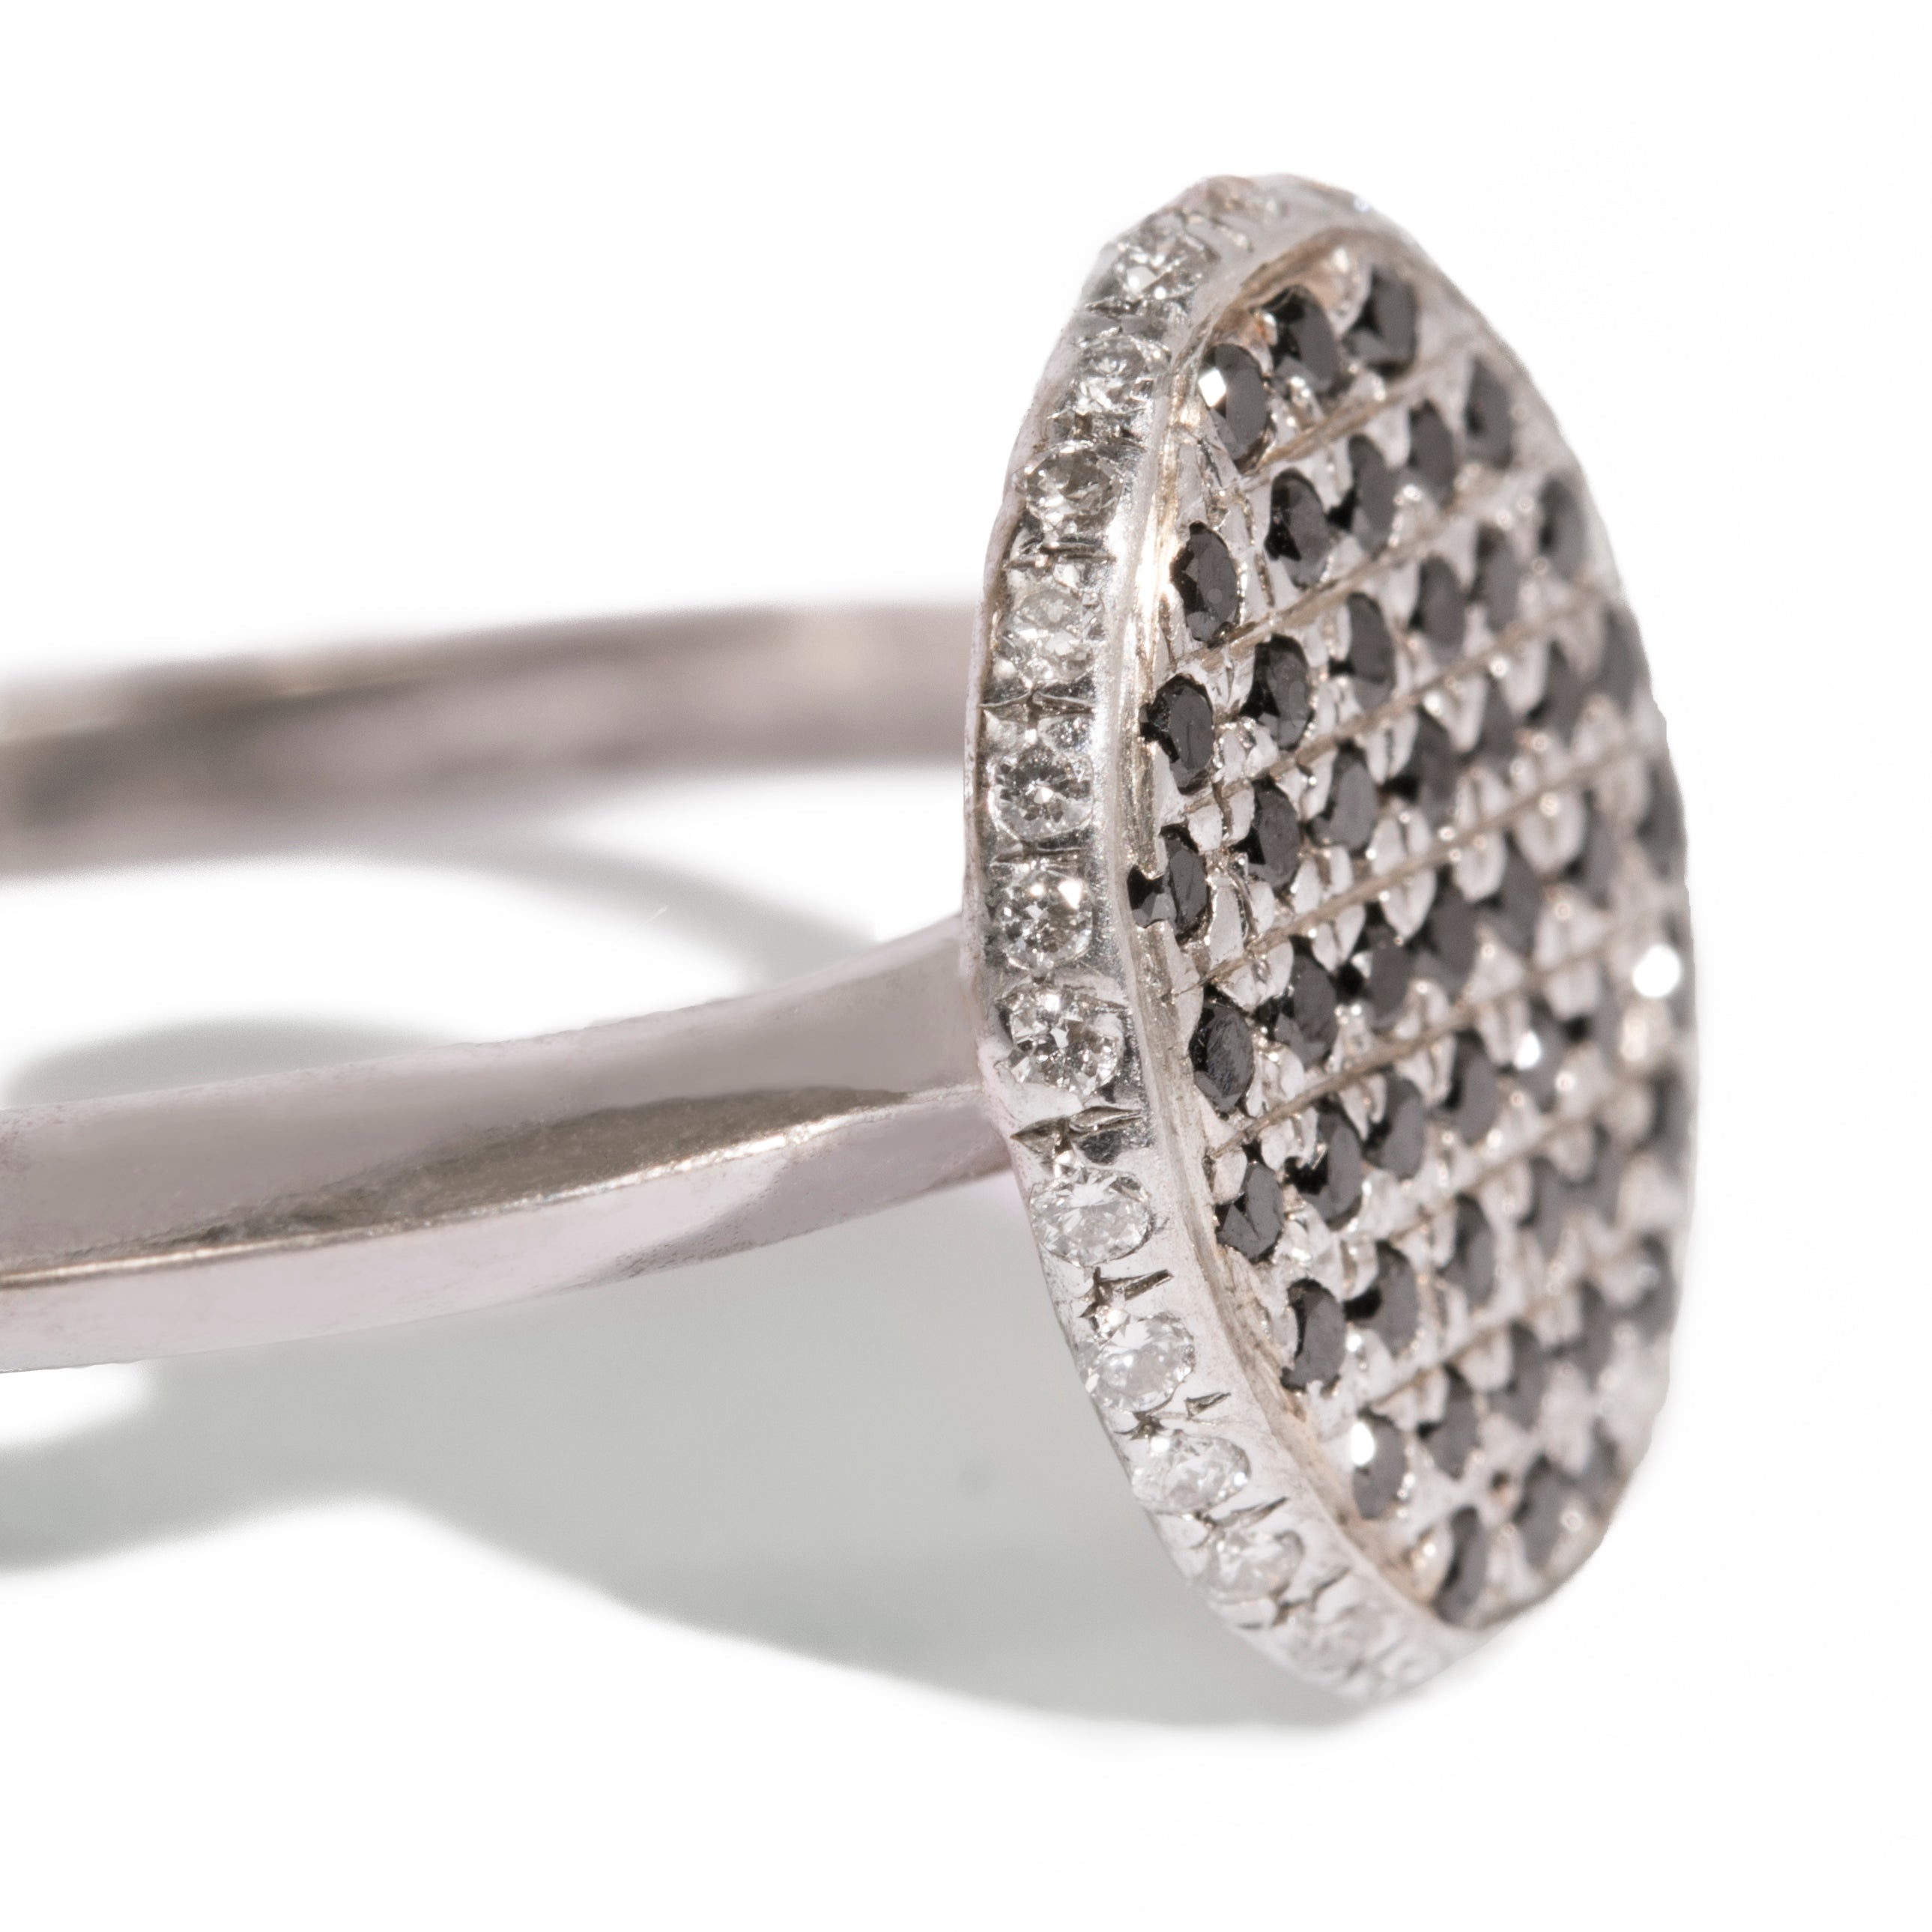 sparkle custom engagement diamonds every fine rings jewelry micro pin this from created gorgeous lab bespoke angle pave